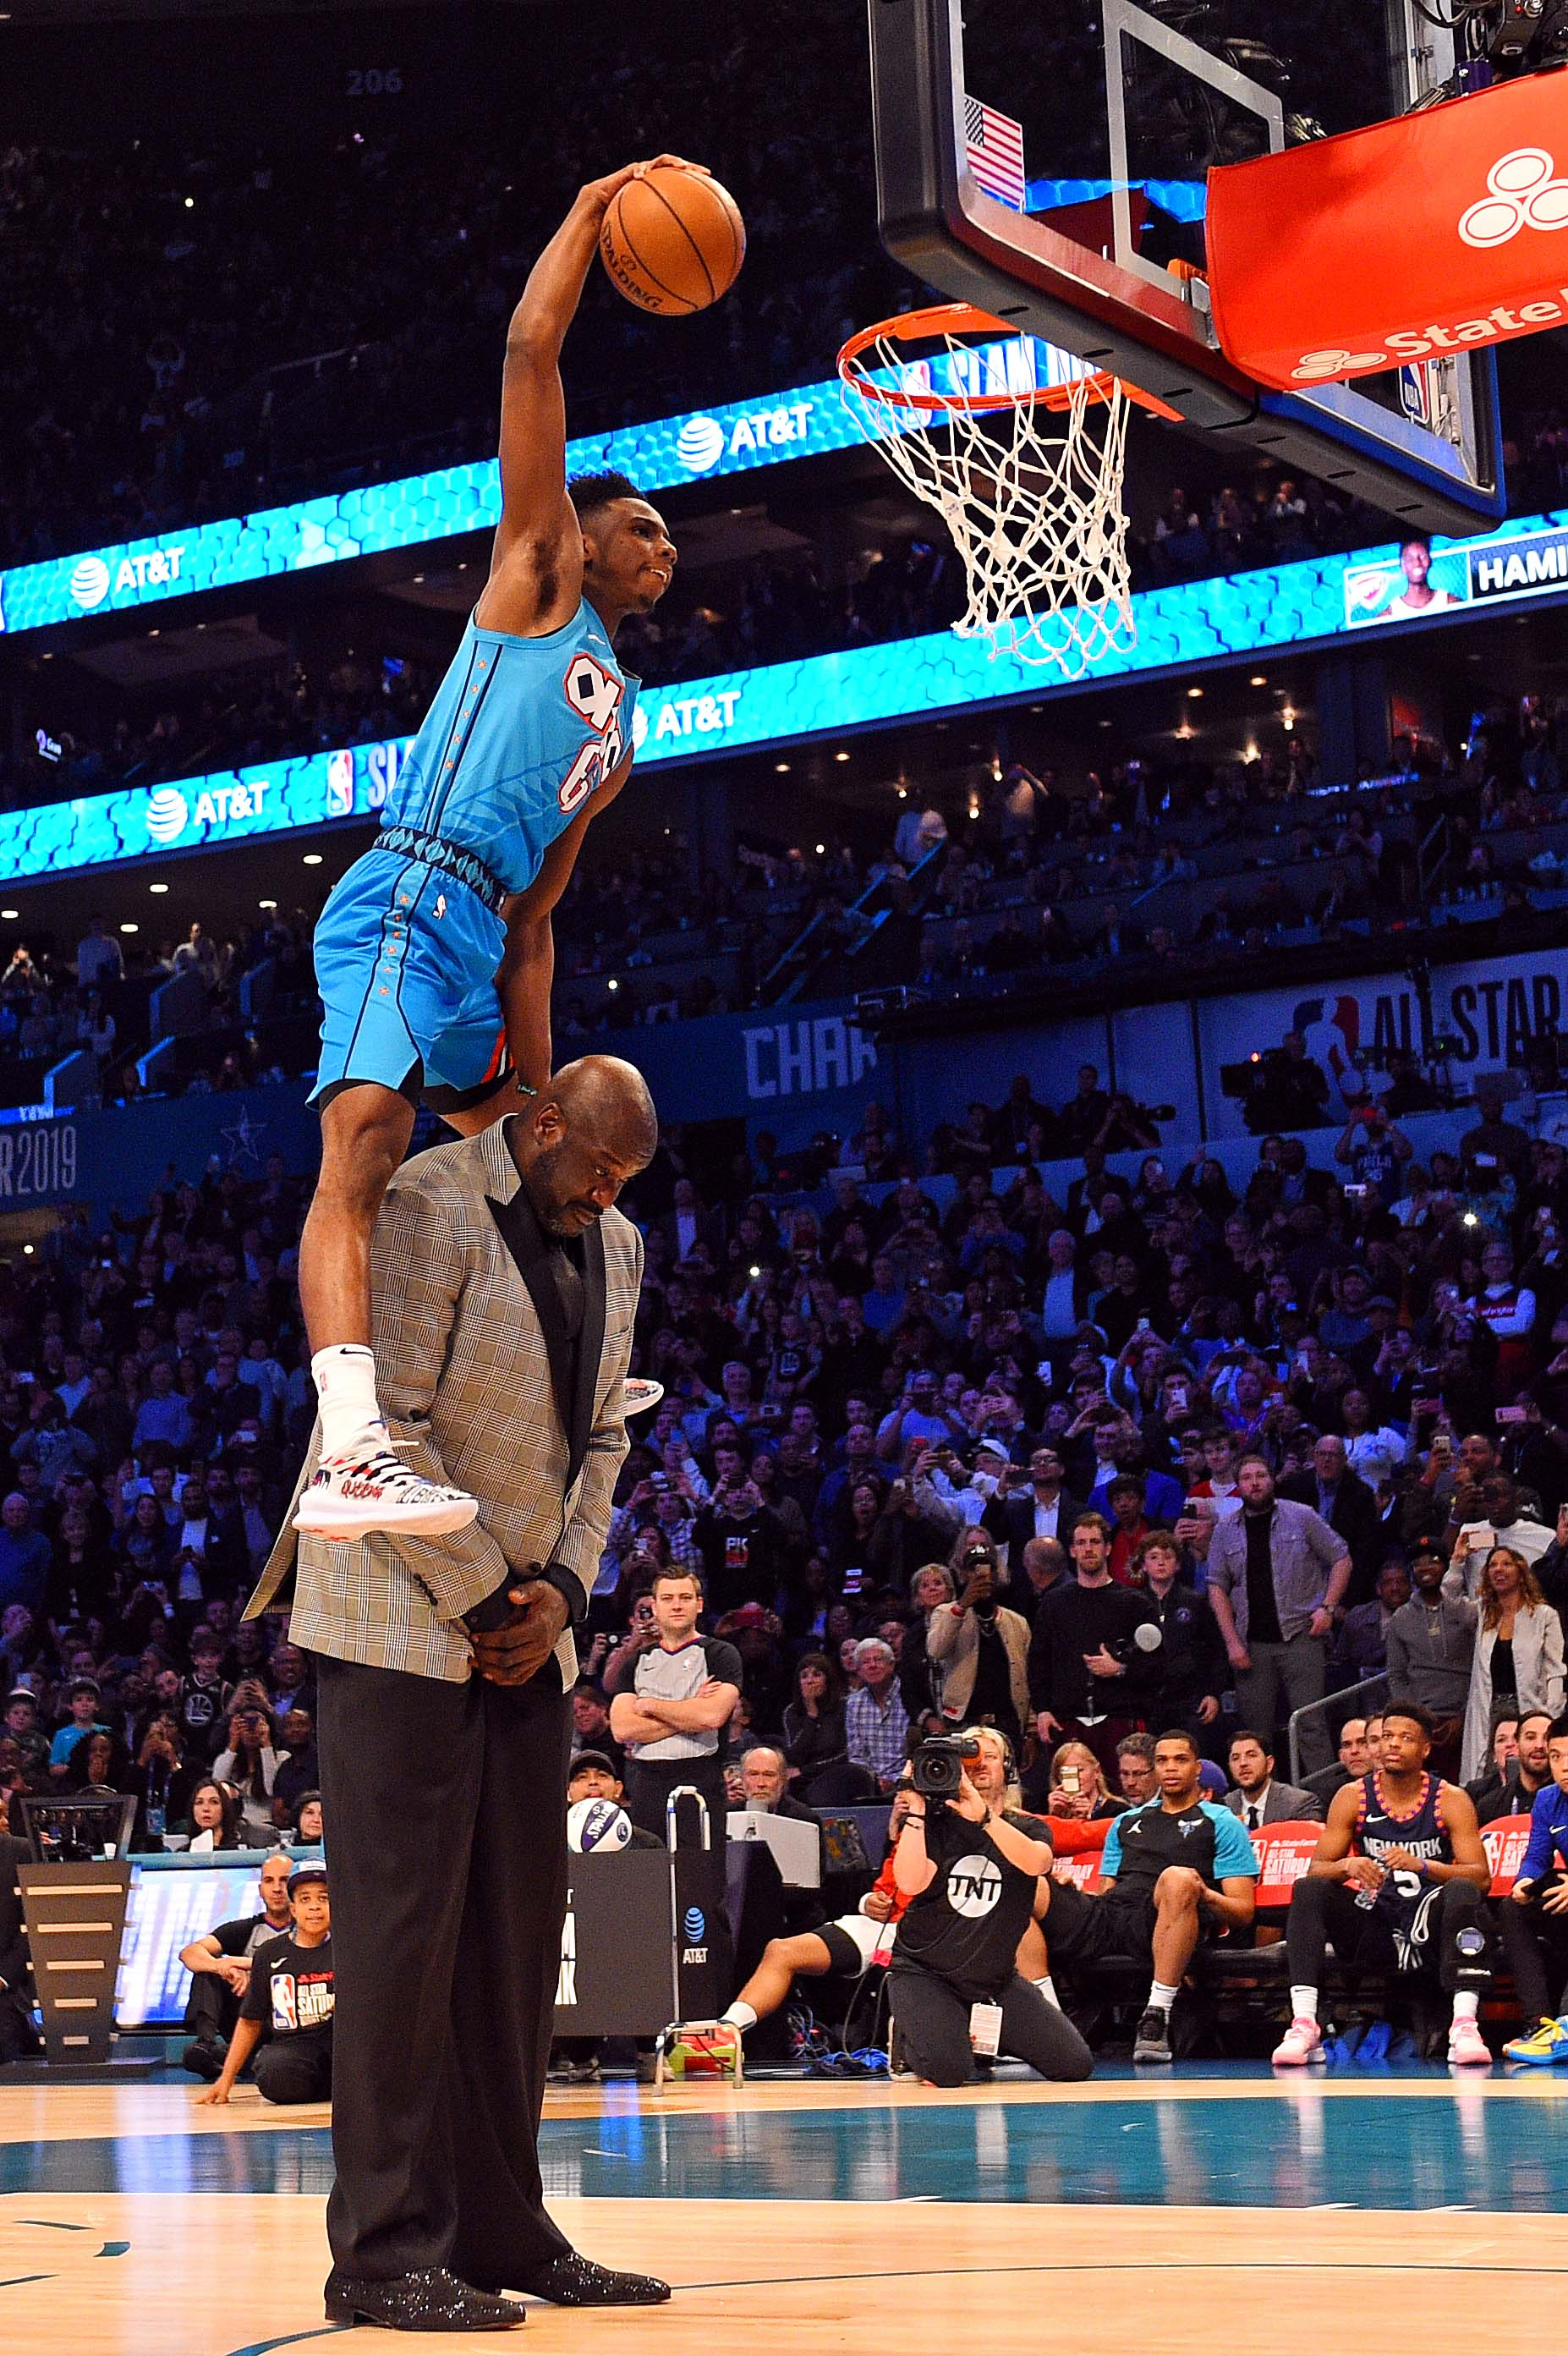 Hamidou Diallo leaps over Shaquille O'Neal to win 2019 Slam Dunk Contest